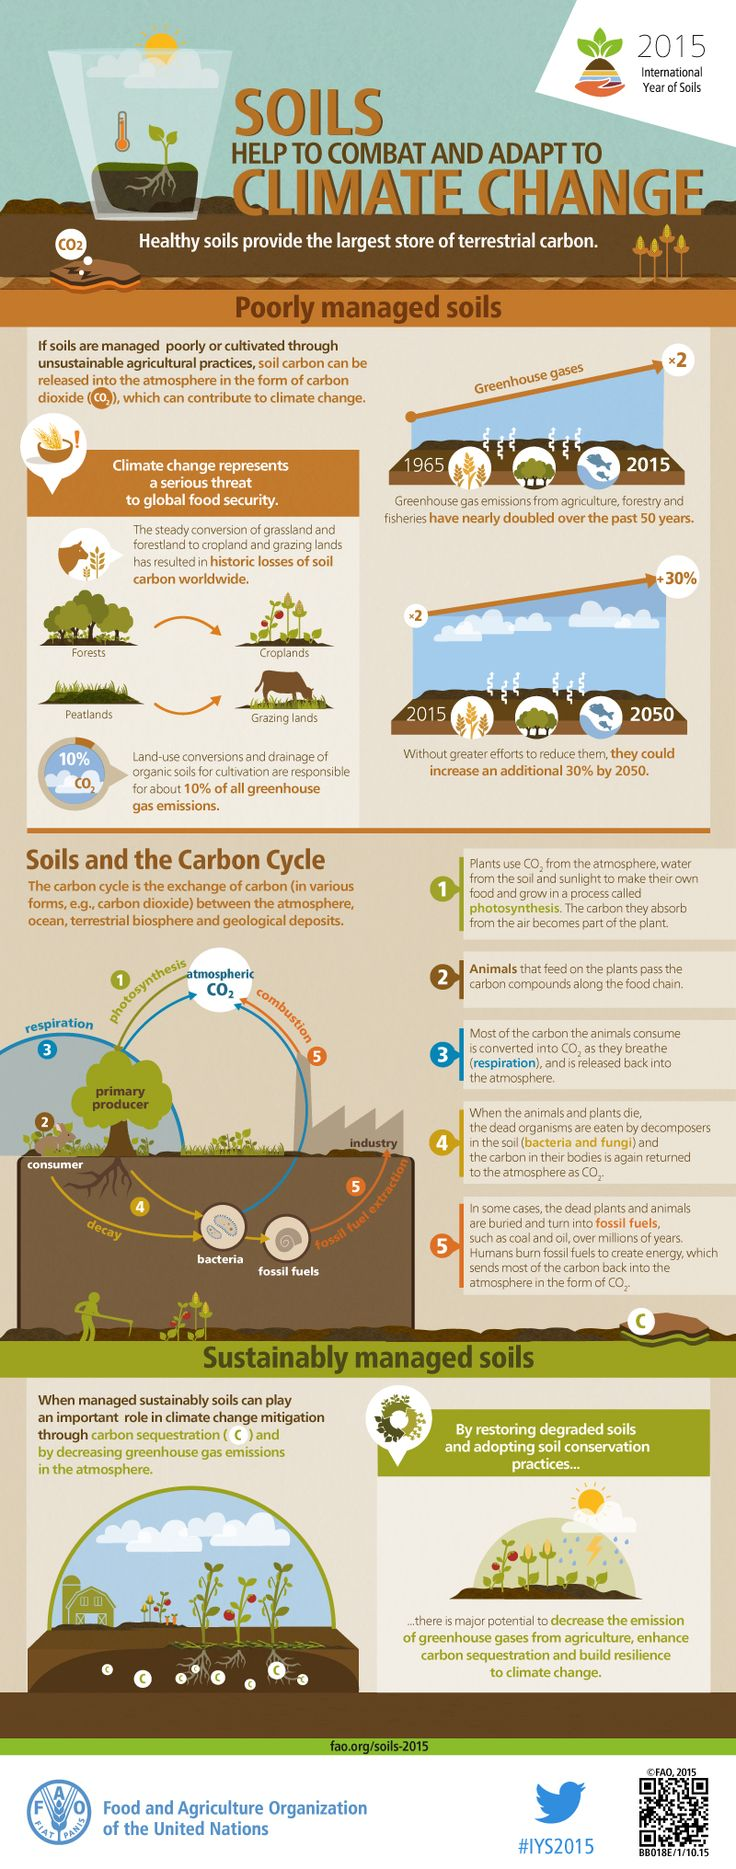 Soils help to combat and adapt to climate change - FAO